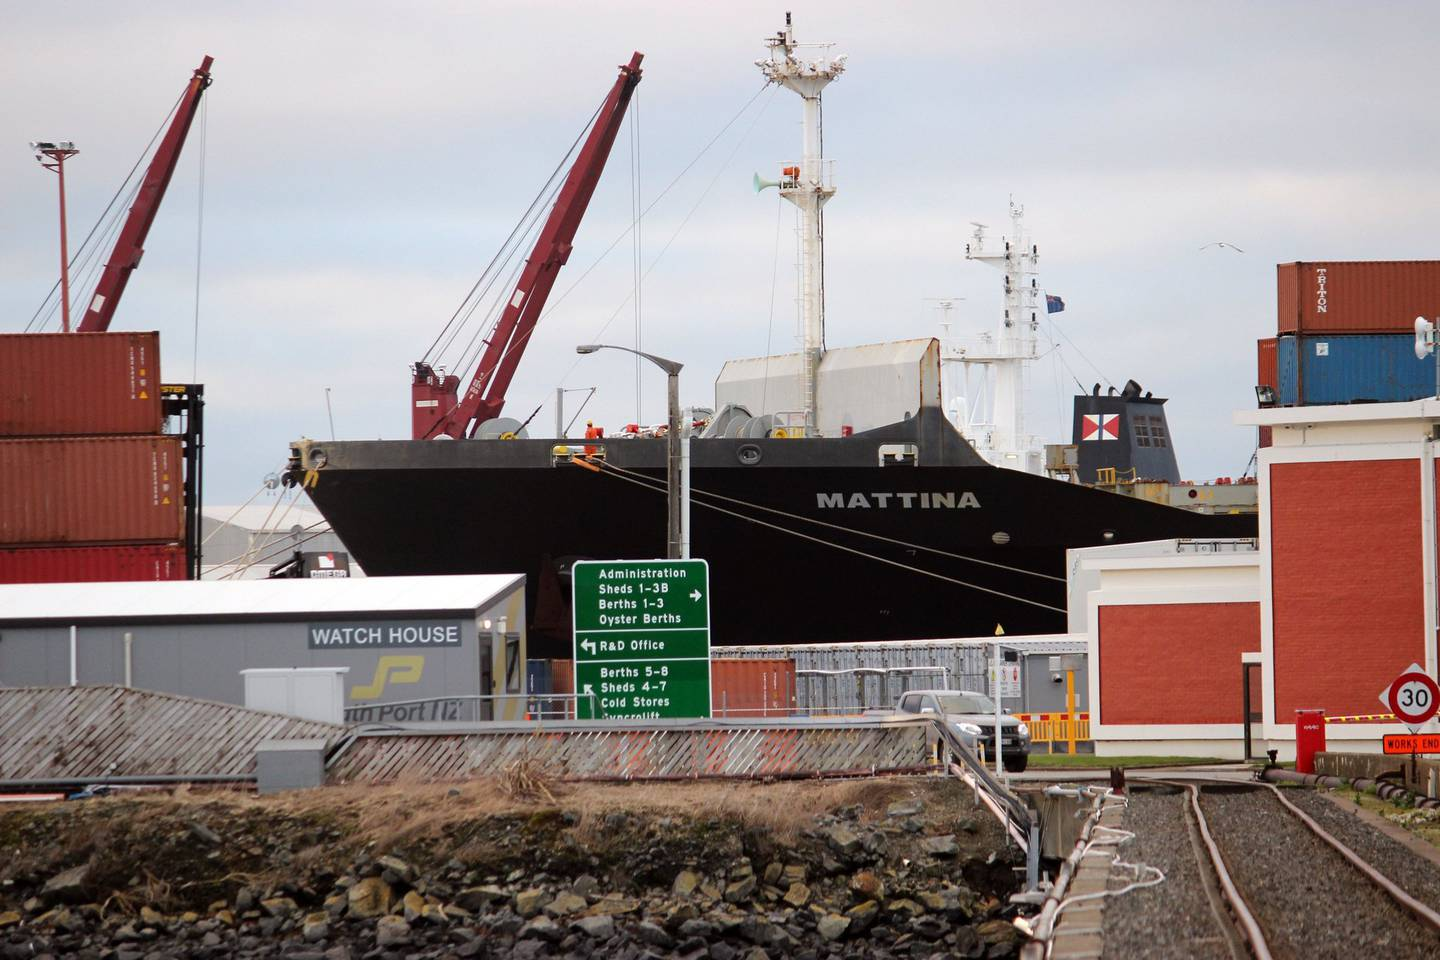 There are 9 Covid cases on the Mattina container ship in Bluff. Photo / Otago Daily Times